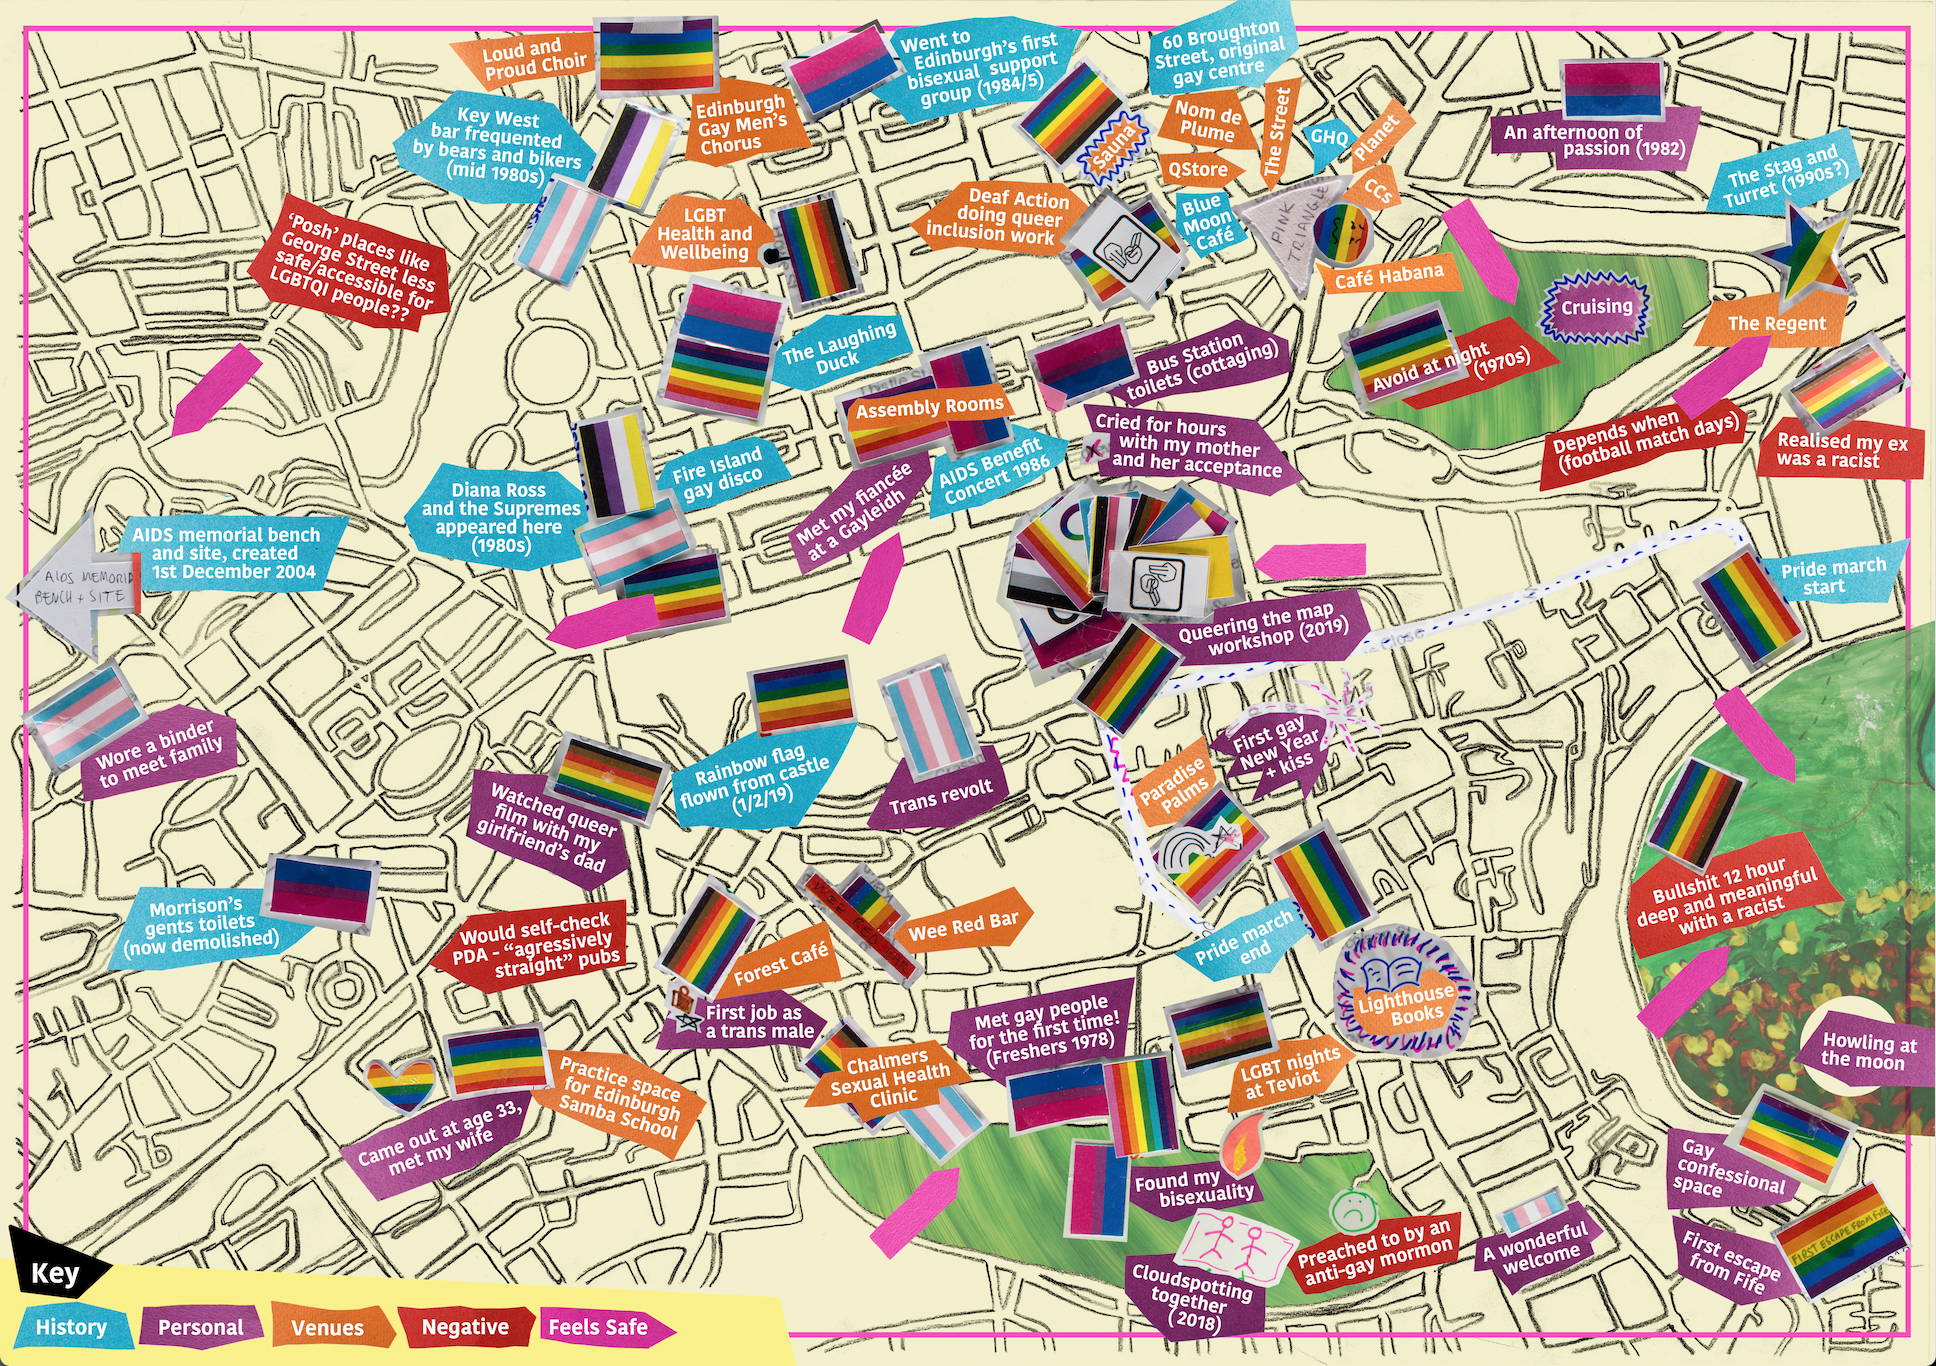 Queering the Map of Edinburgh